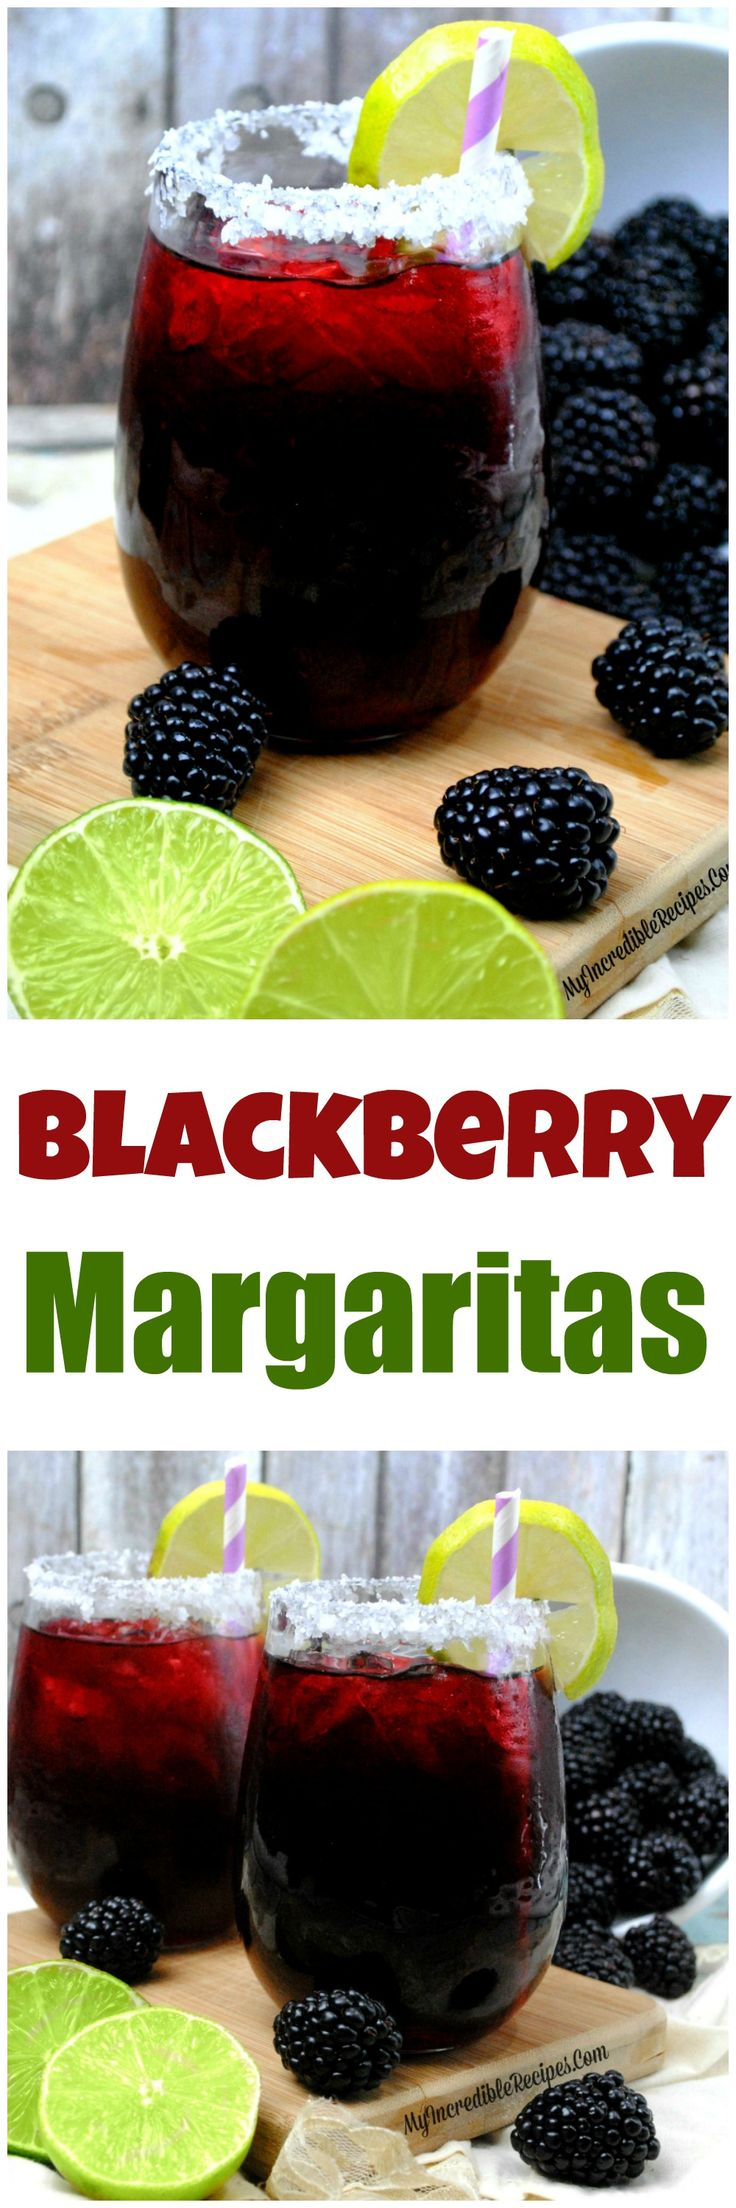 Blackberry Margarita Smash!